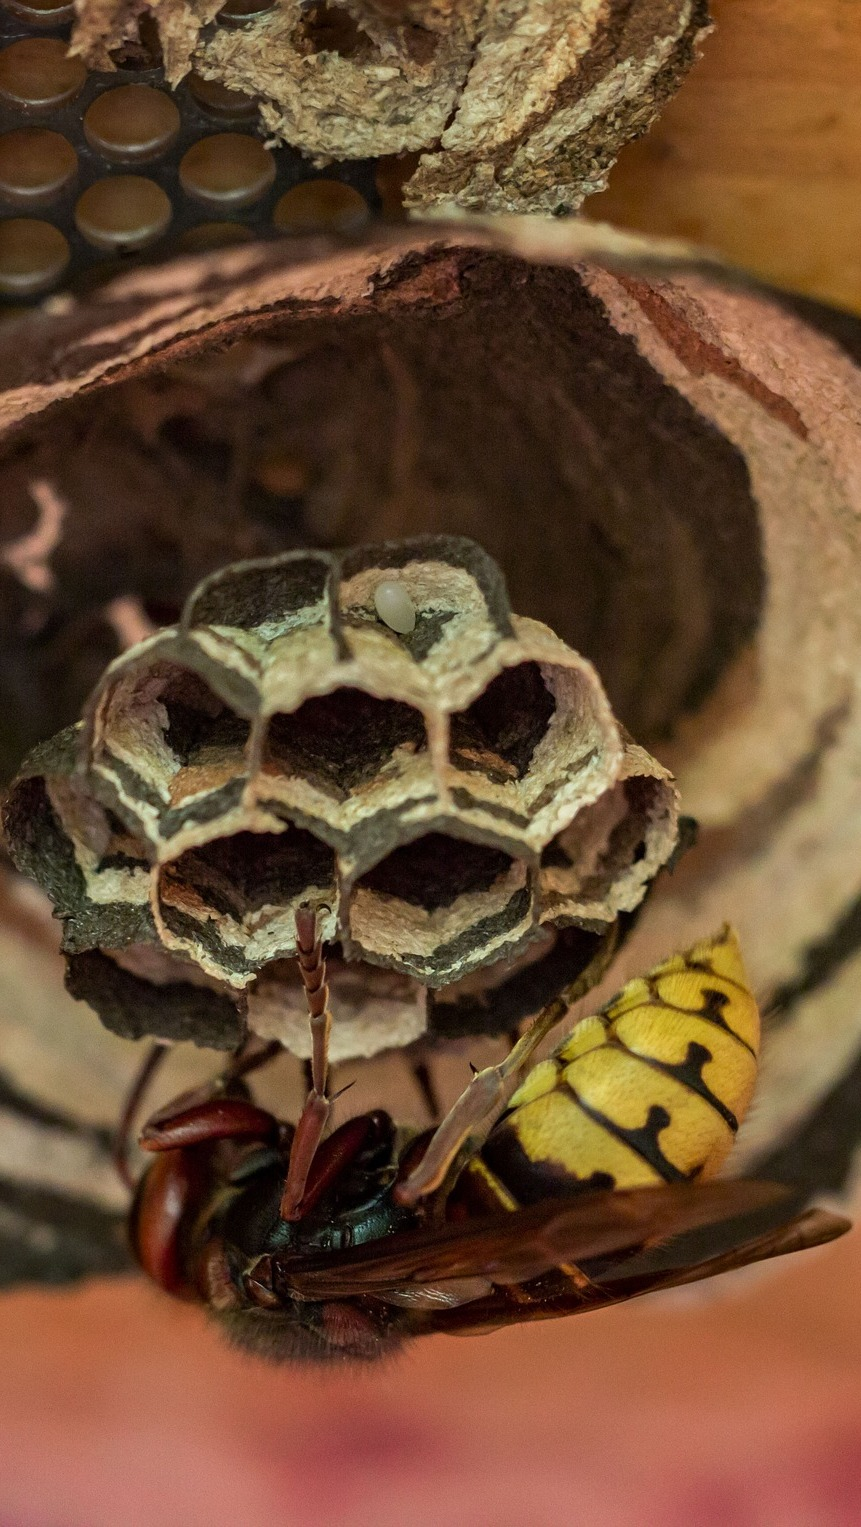 A wasp hornet building it's nest.